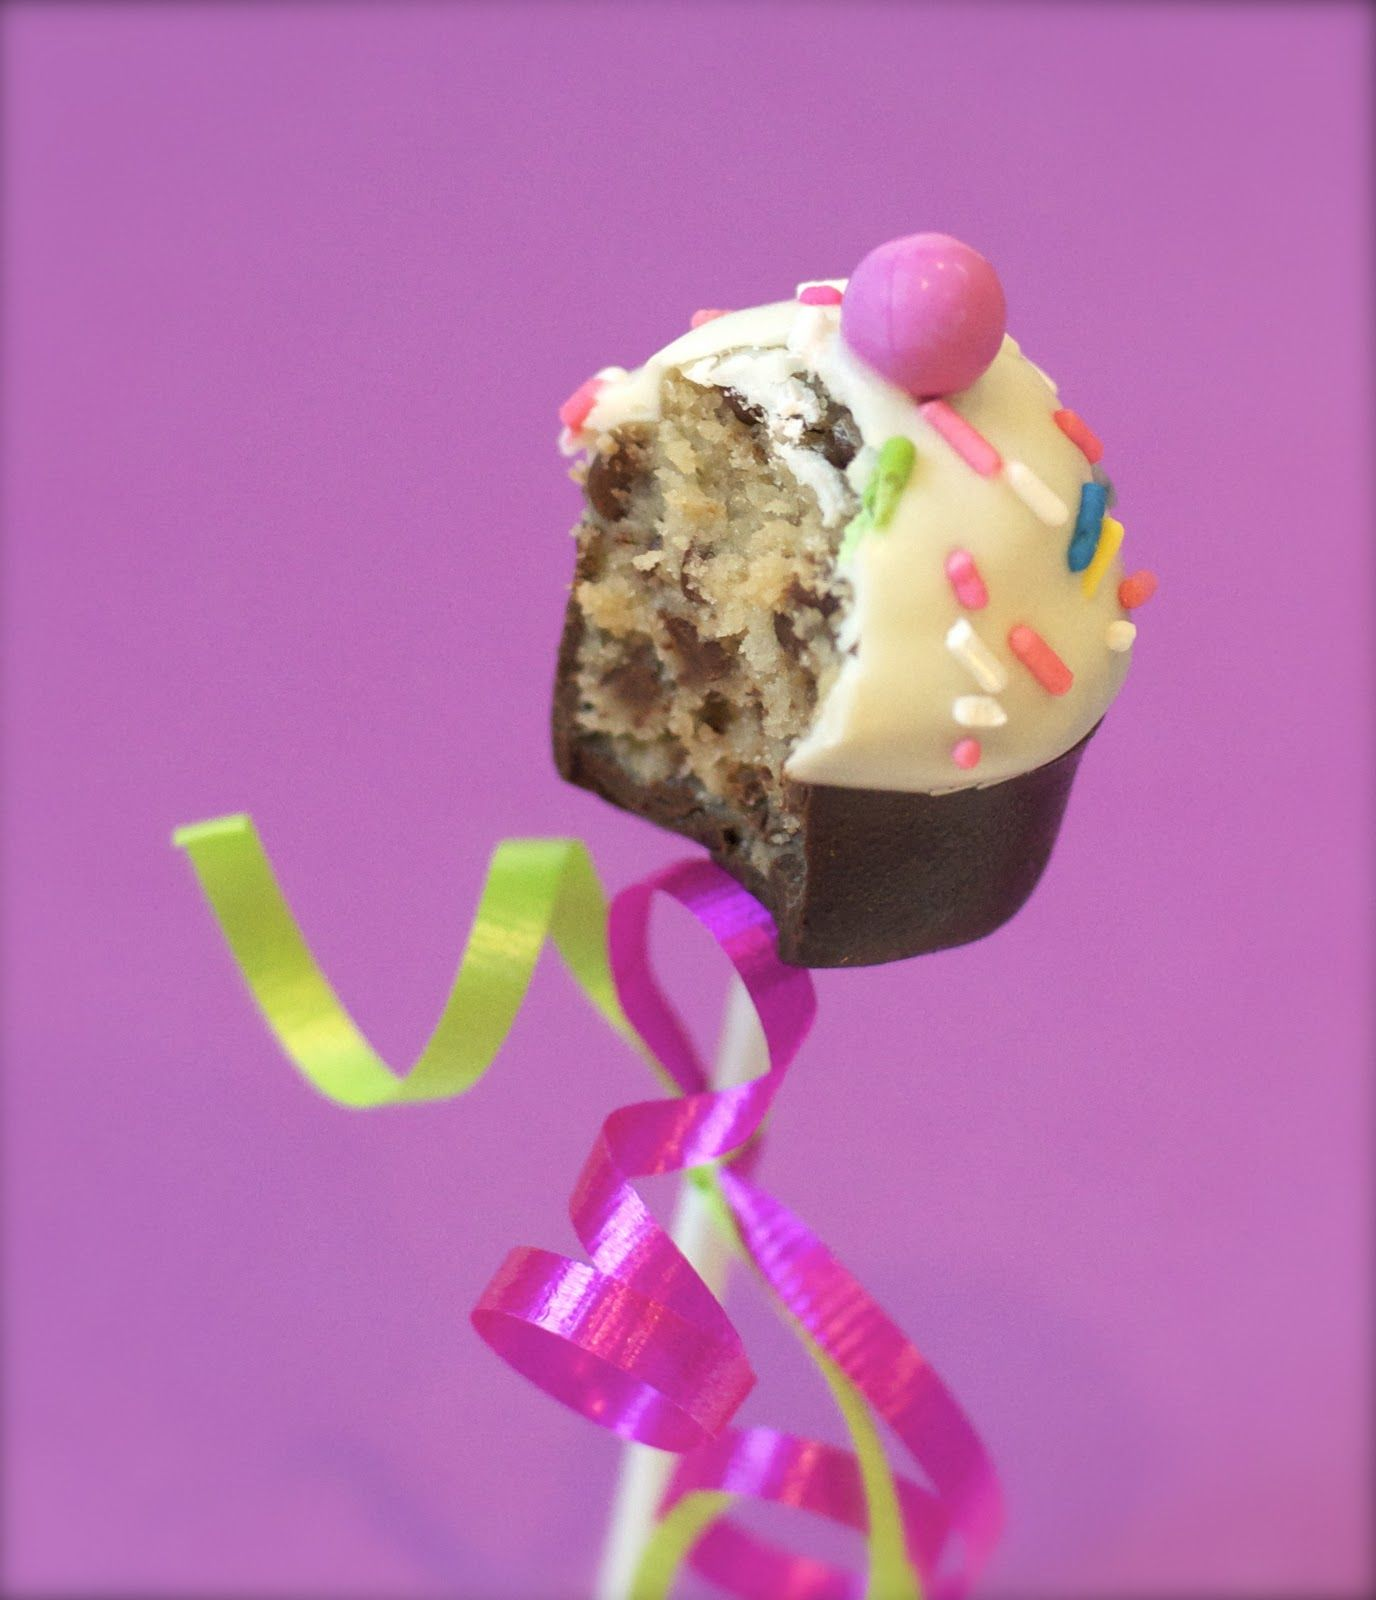 Best choco chip cookie dough recipe for cake pops! Linds I